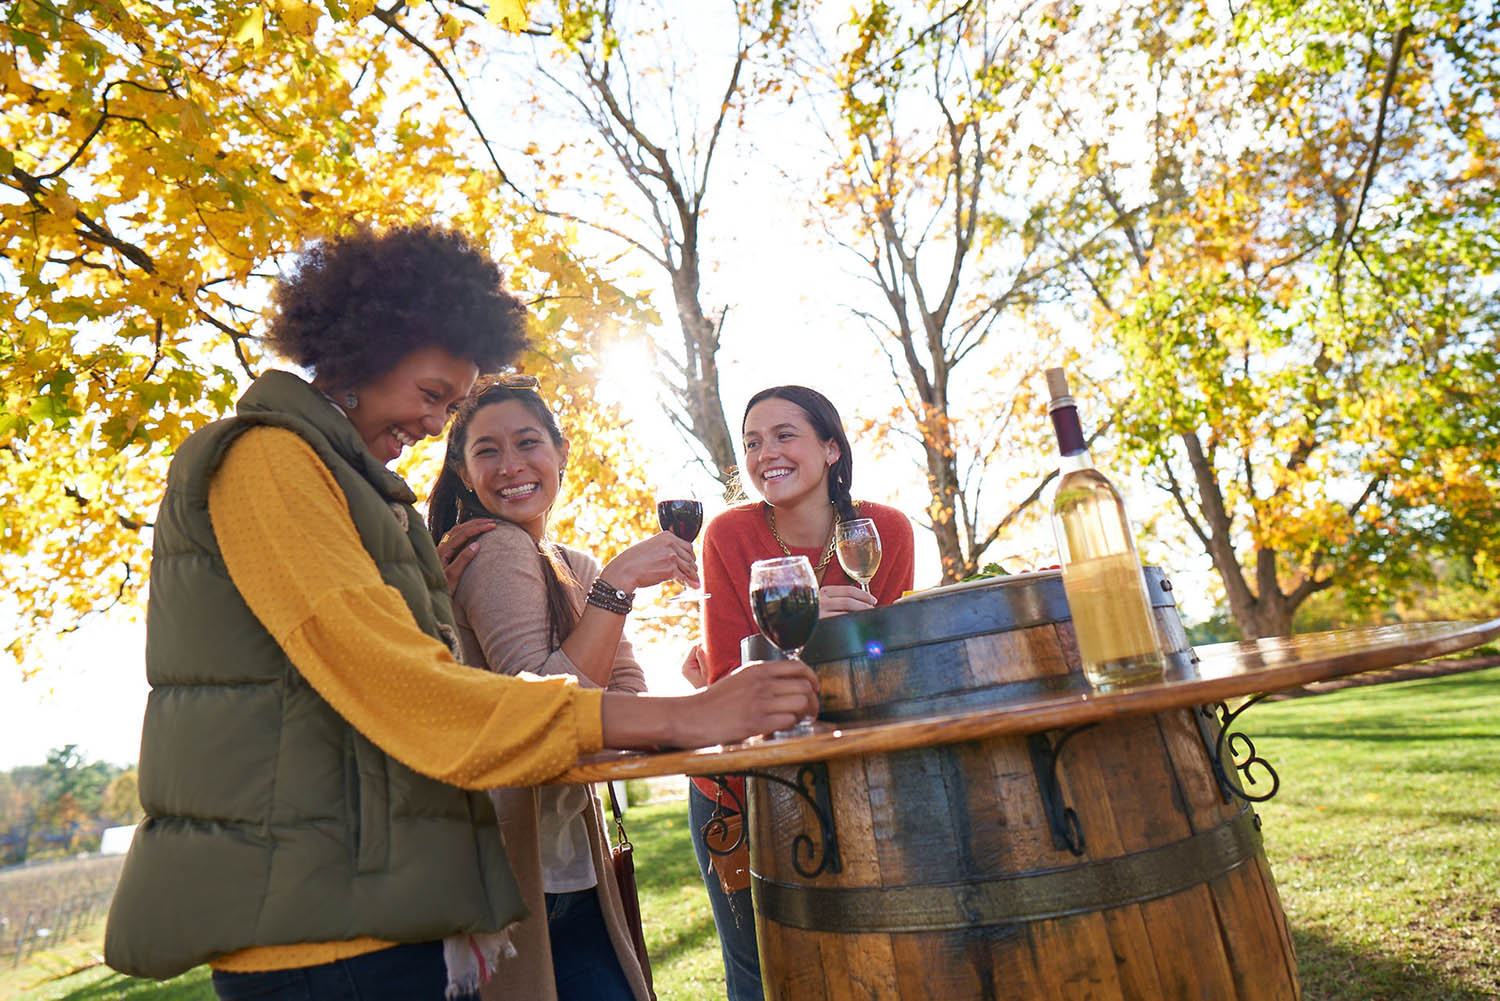 Woman outdoors gathered around a table wine tasting